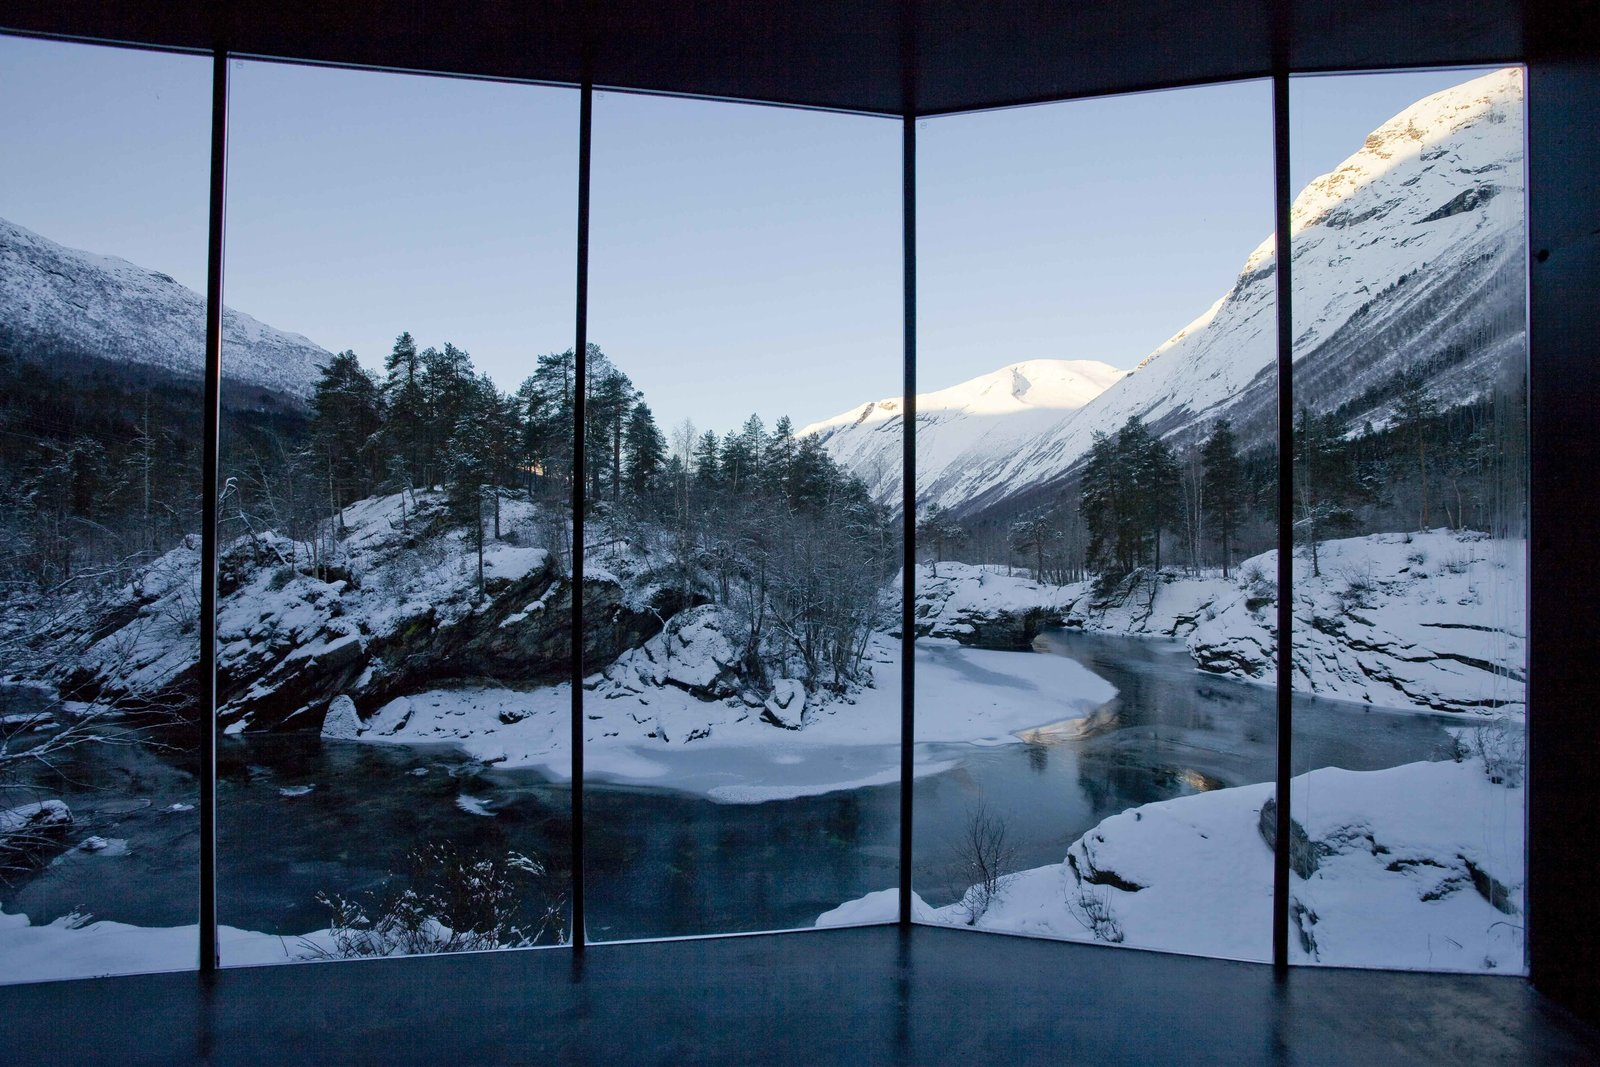 Rustic Cabins Comprise This Impossibly Idyllic Hotel in